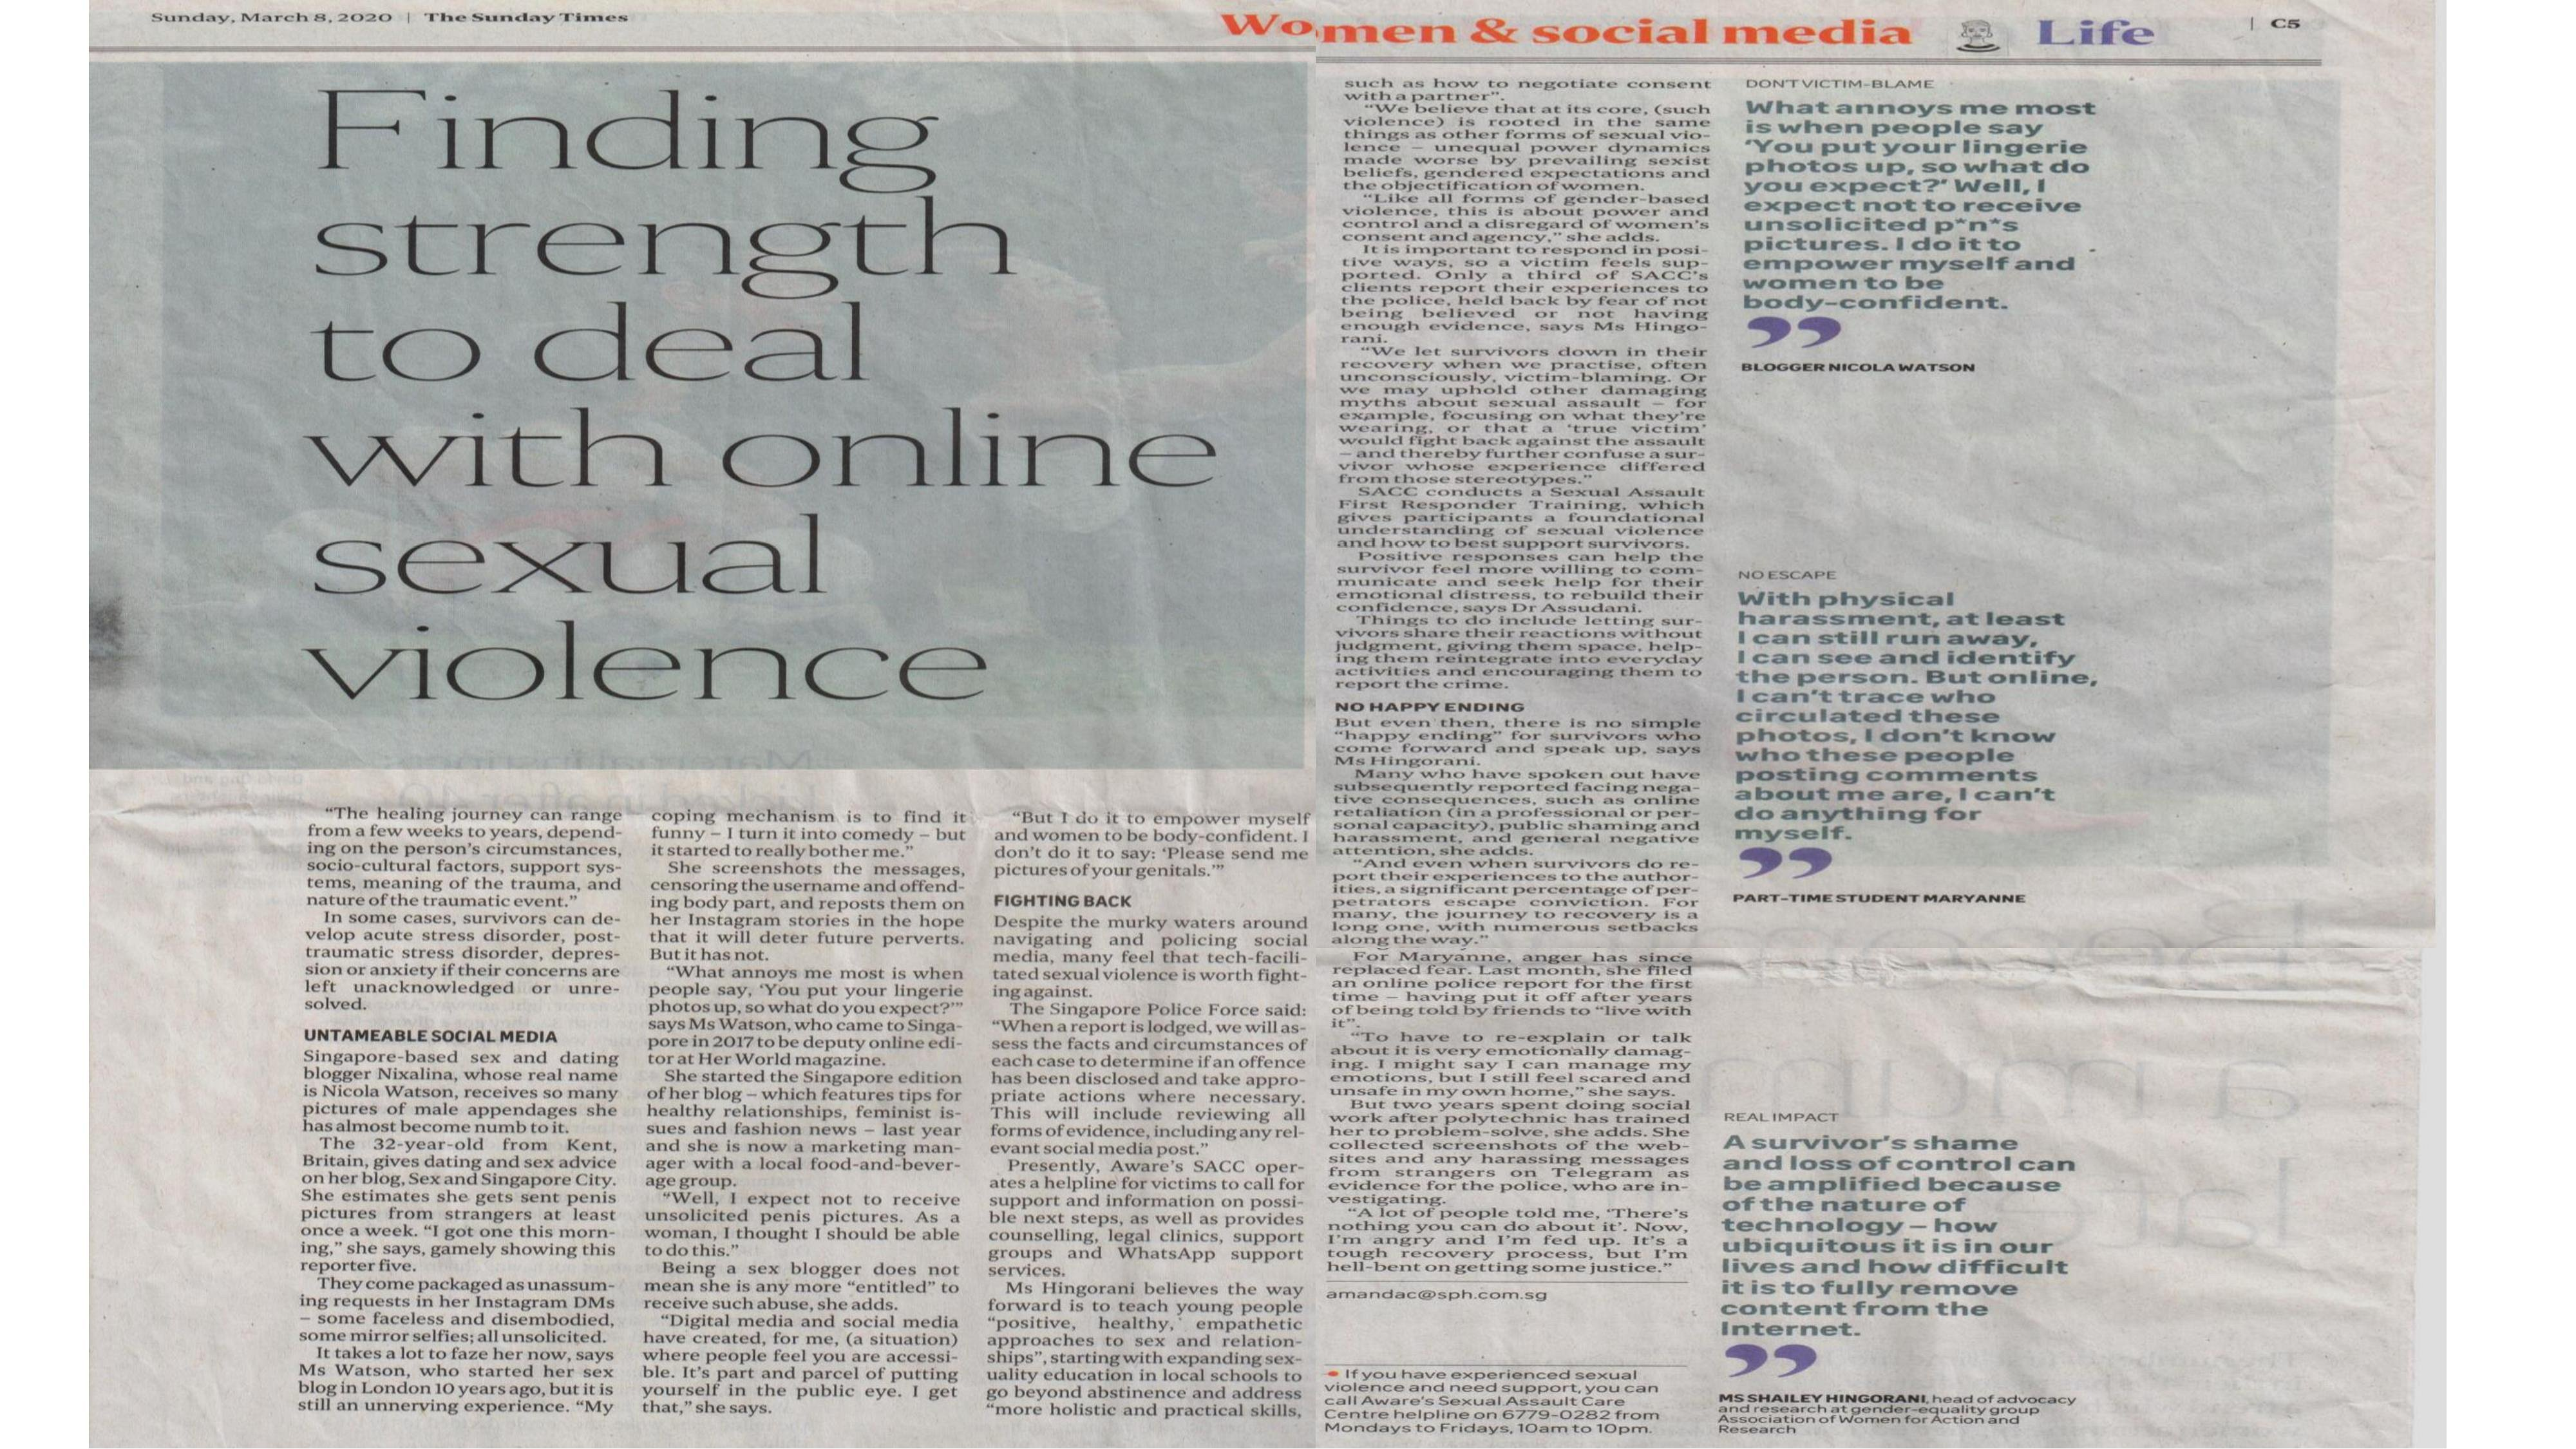 Understanding Technology-Facilitated Sexual Violence (TFSV) - The Sunday Times 8 March 2020